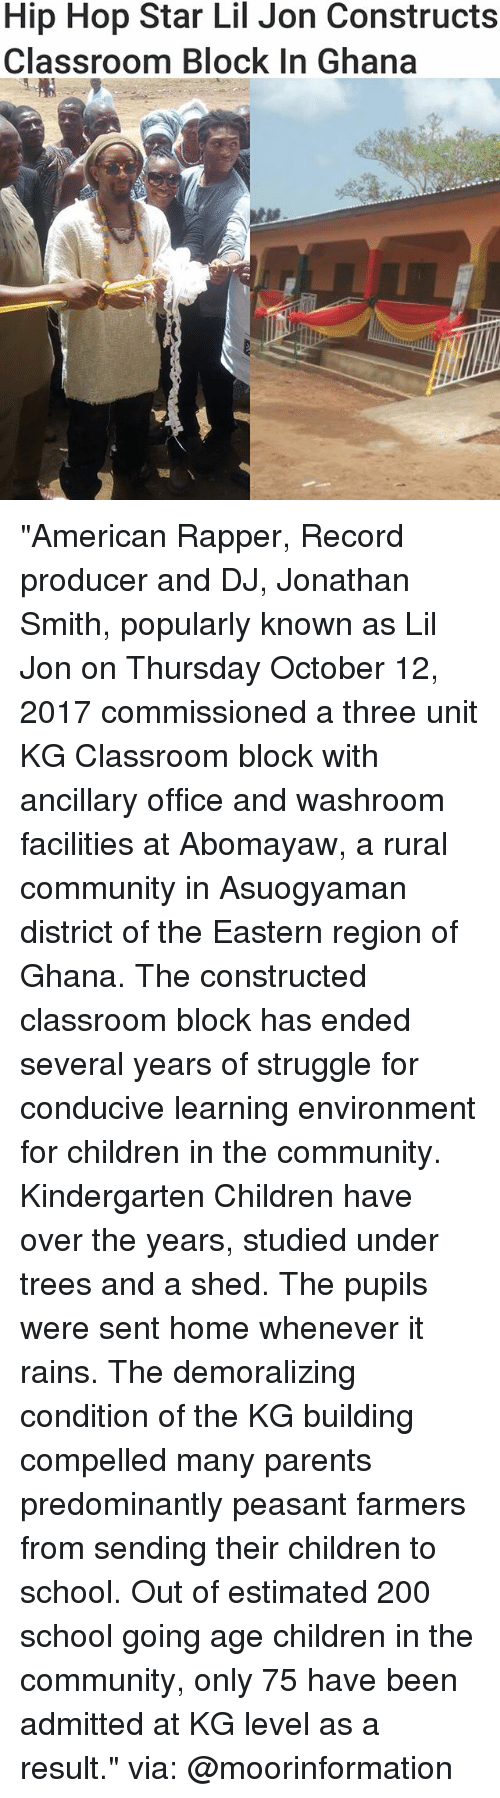 """Bailey Jay, Children, and Community: Hip Hop Star Lil Jon Constructs  Classroom BloCK In Ghana """"American Rapper, Record producer and DJ, Jonathan Smith, popularly known as Lil Jon on Thursday October 12, 2017 commissioned a three unit KG Classroom block with ancillary office and washroom facilities at Abomayaw, a rural community in Asuogyaman district of the Eastern region of Ghana. The constructed classroom block has ended several years of struggle for conducive learning environment for children in the community. Kindergarten Children have over the years, studied under trees and a shed. The pupils were sent home whenever it rains. The demoralizing condition of the KG building compelled many parents predominantly peasant farmers from sending their children to school. Out of estimated 200 school going age children in the community, only 75 have been admitted at KG level as a result."""" via: @moorinformation"""